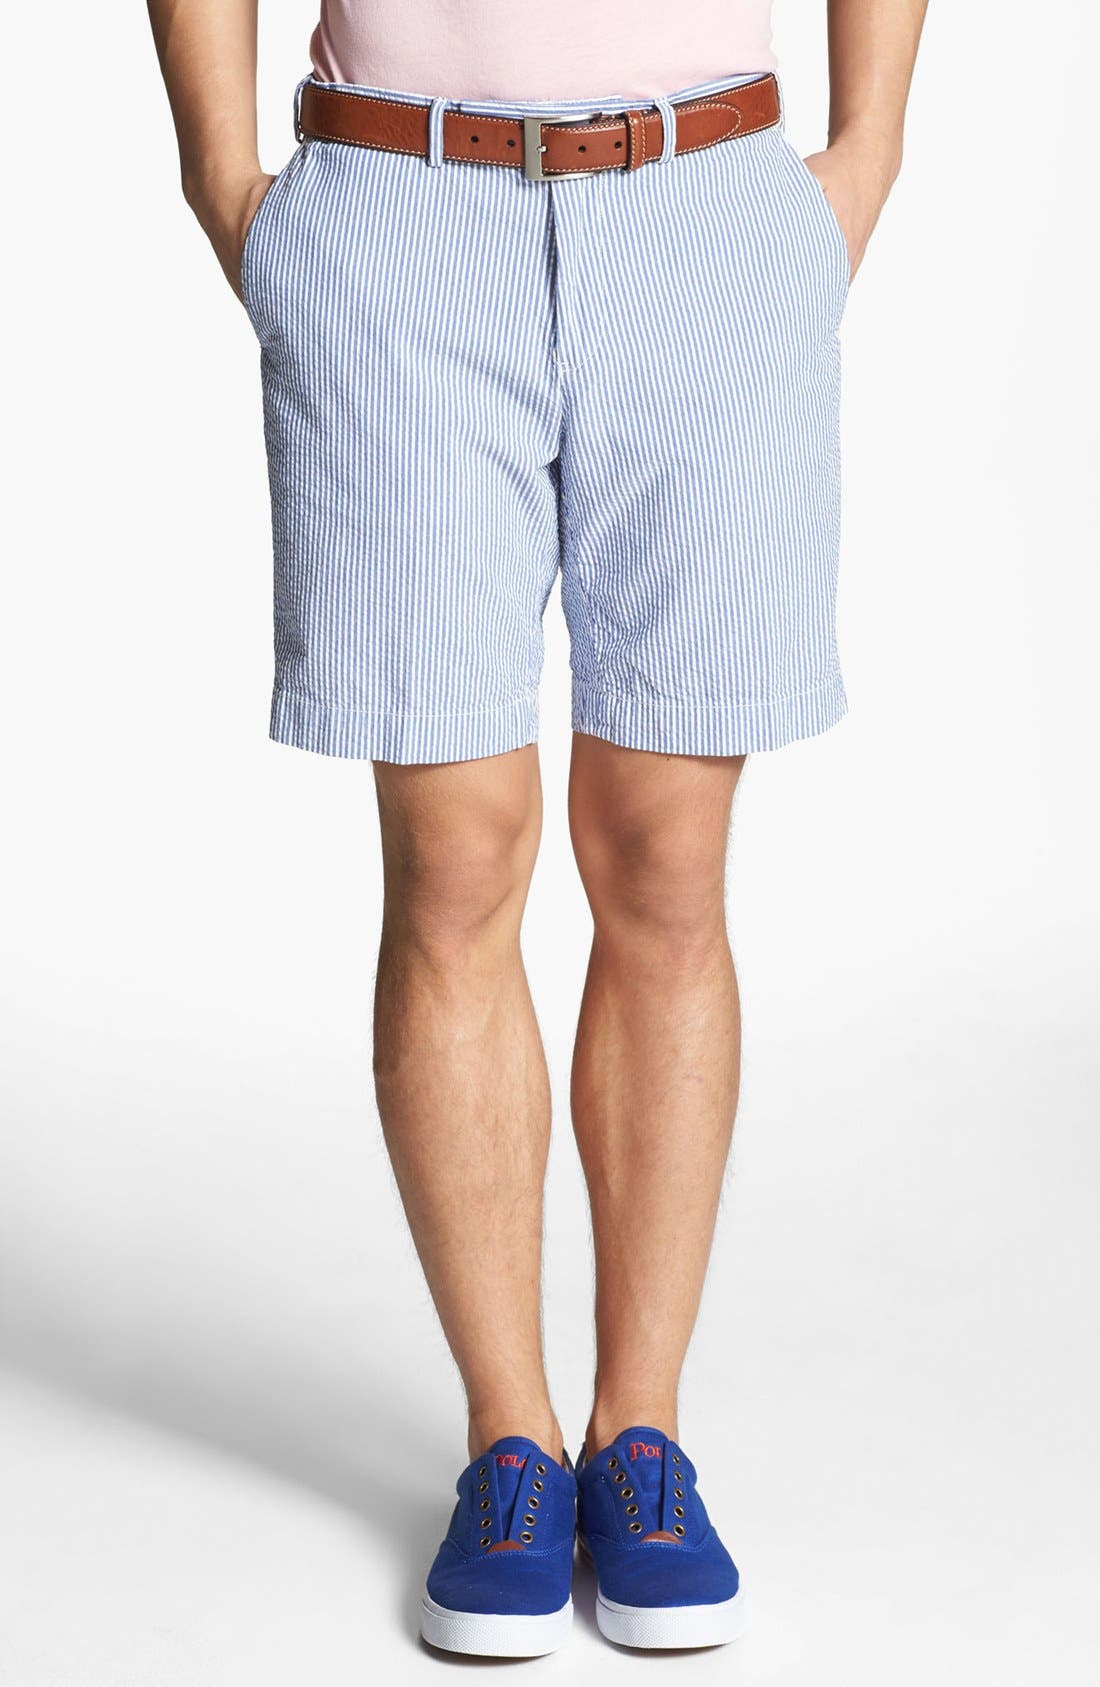 Alternate Image 1 Selected - Polo Ralph Lauren 'Suffield' Shorts